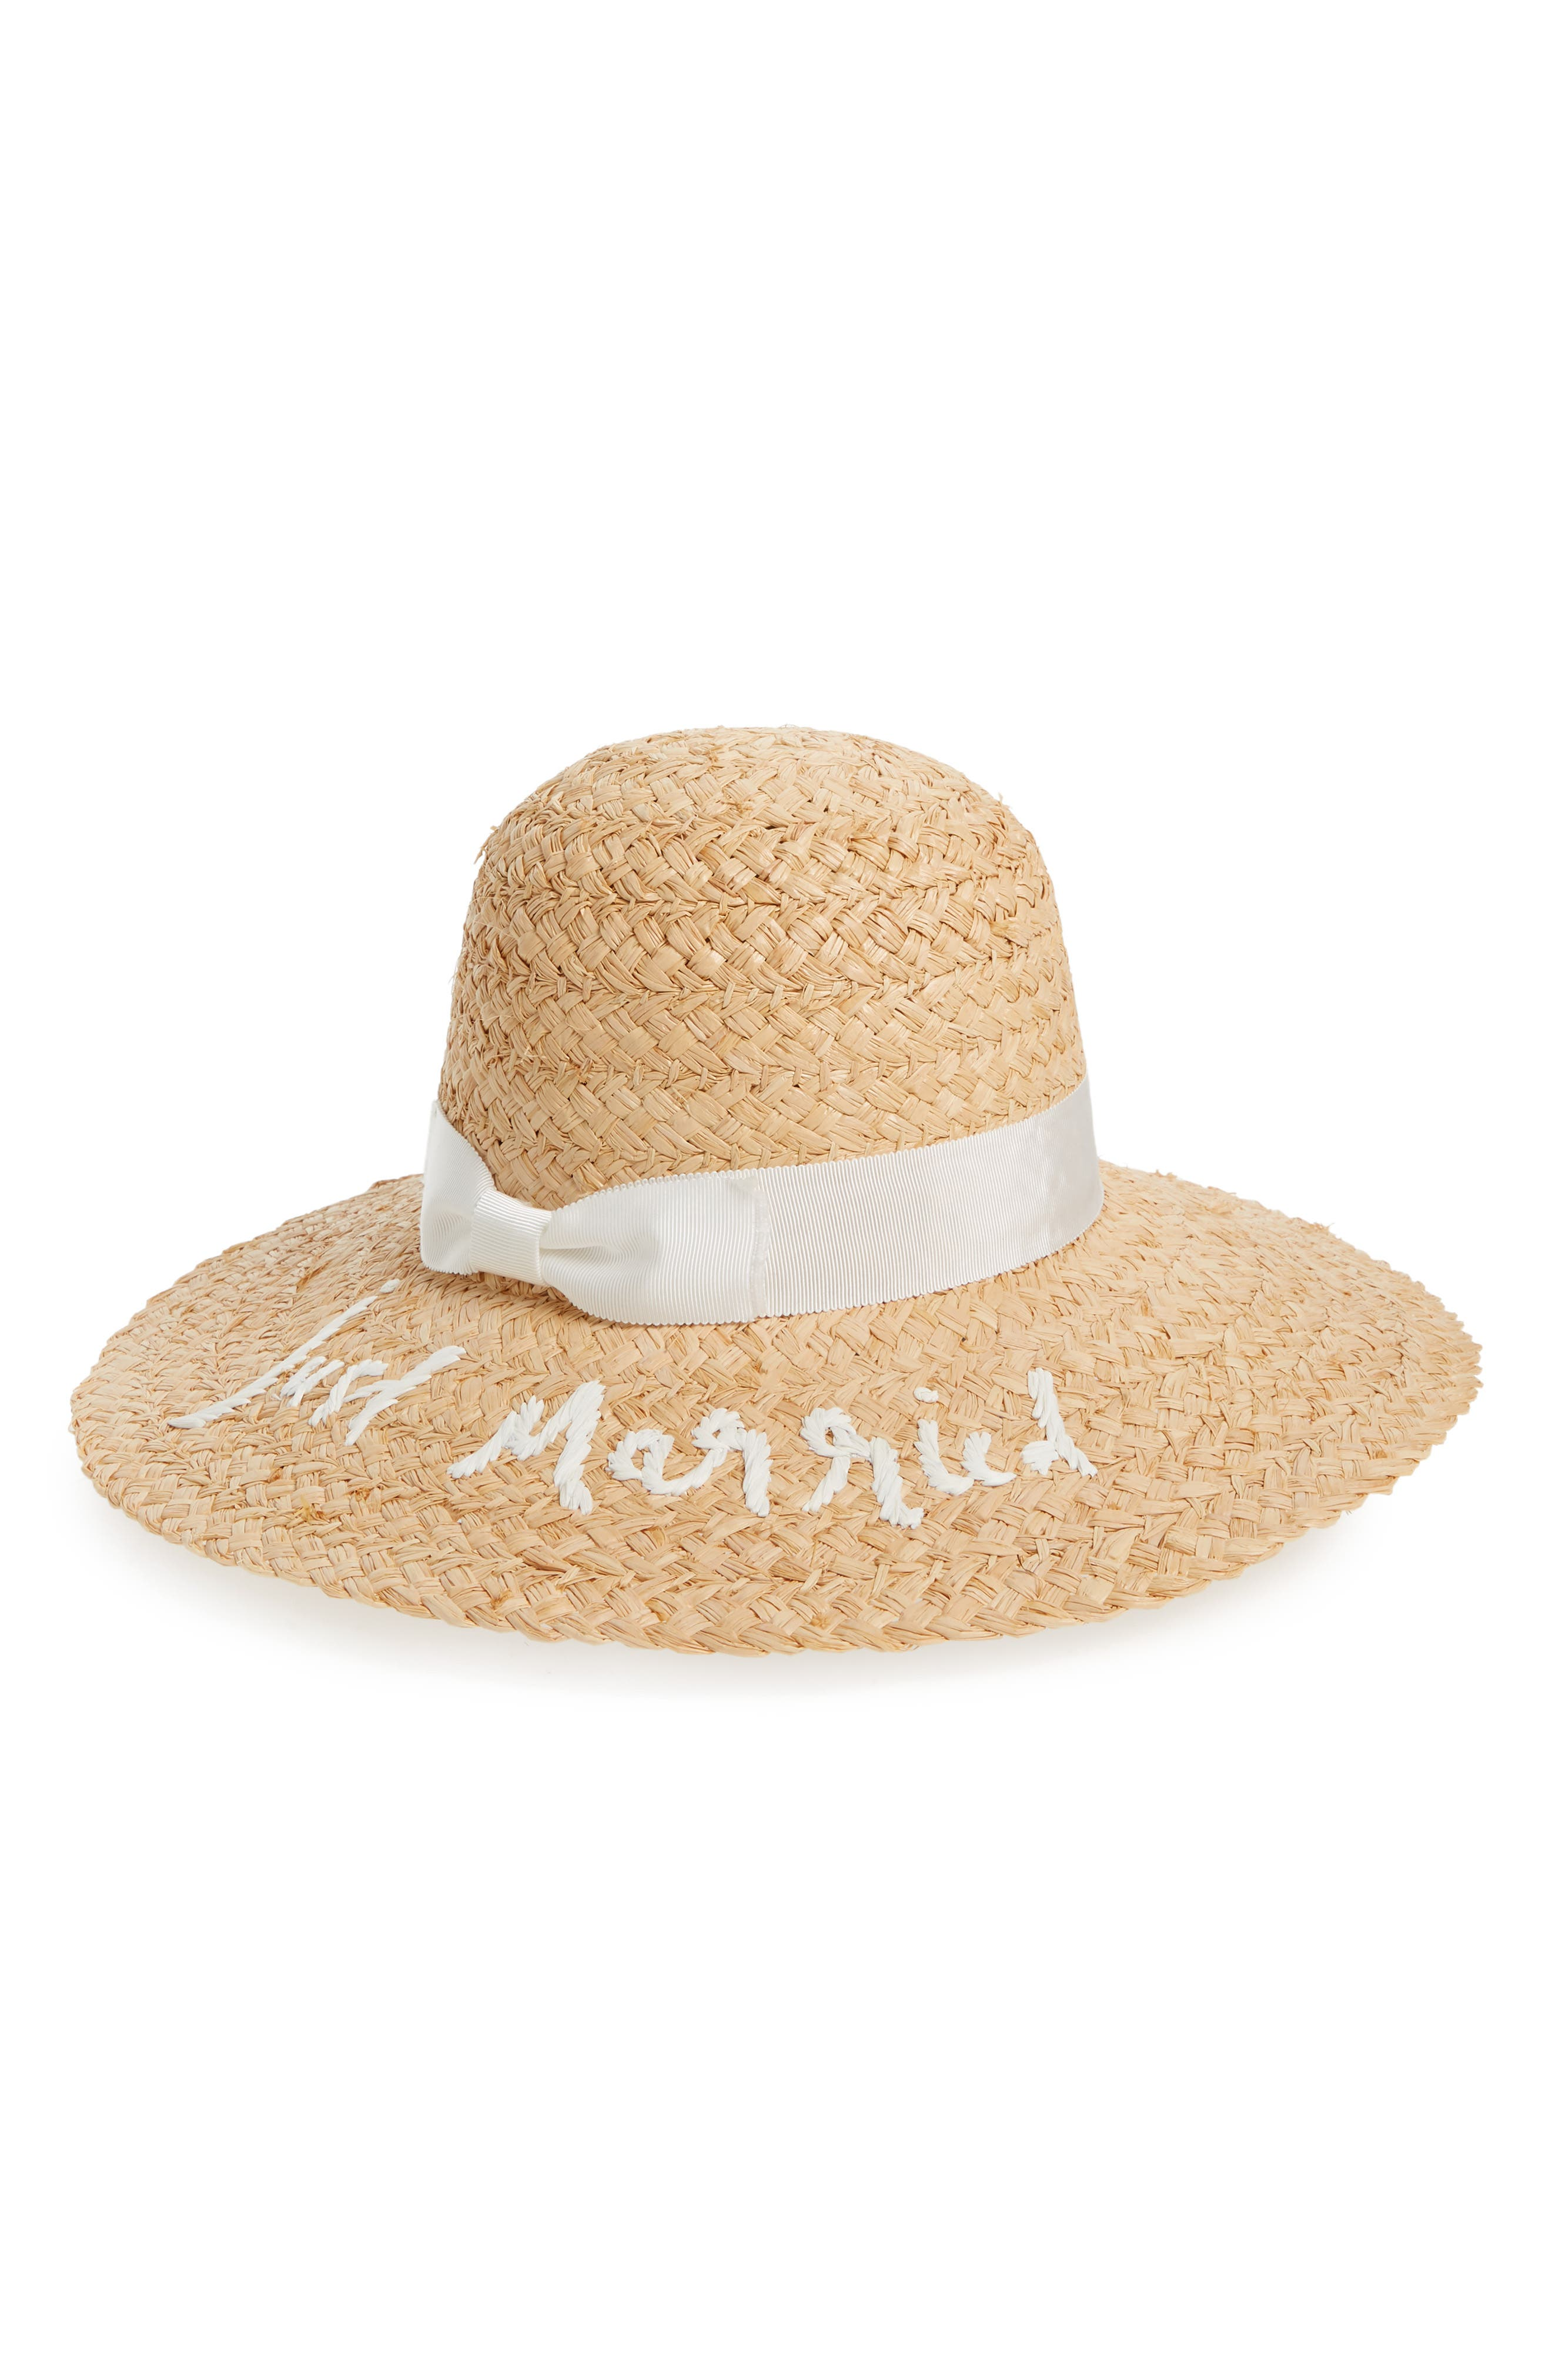 Main Image - kate spade new york just married straw hat